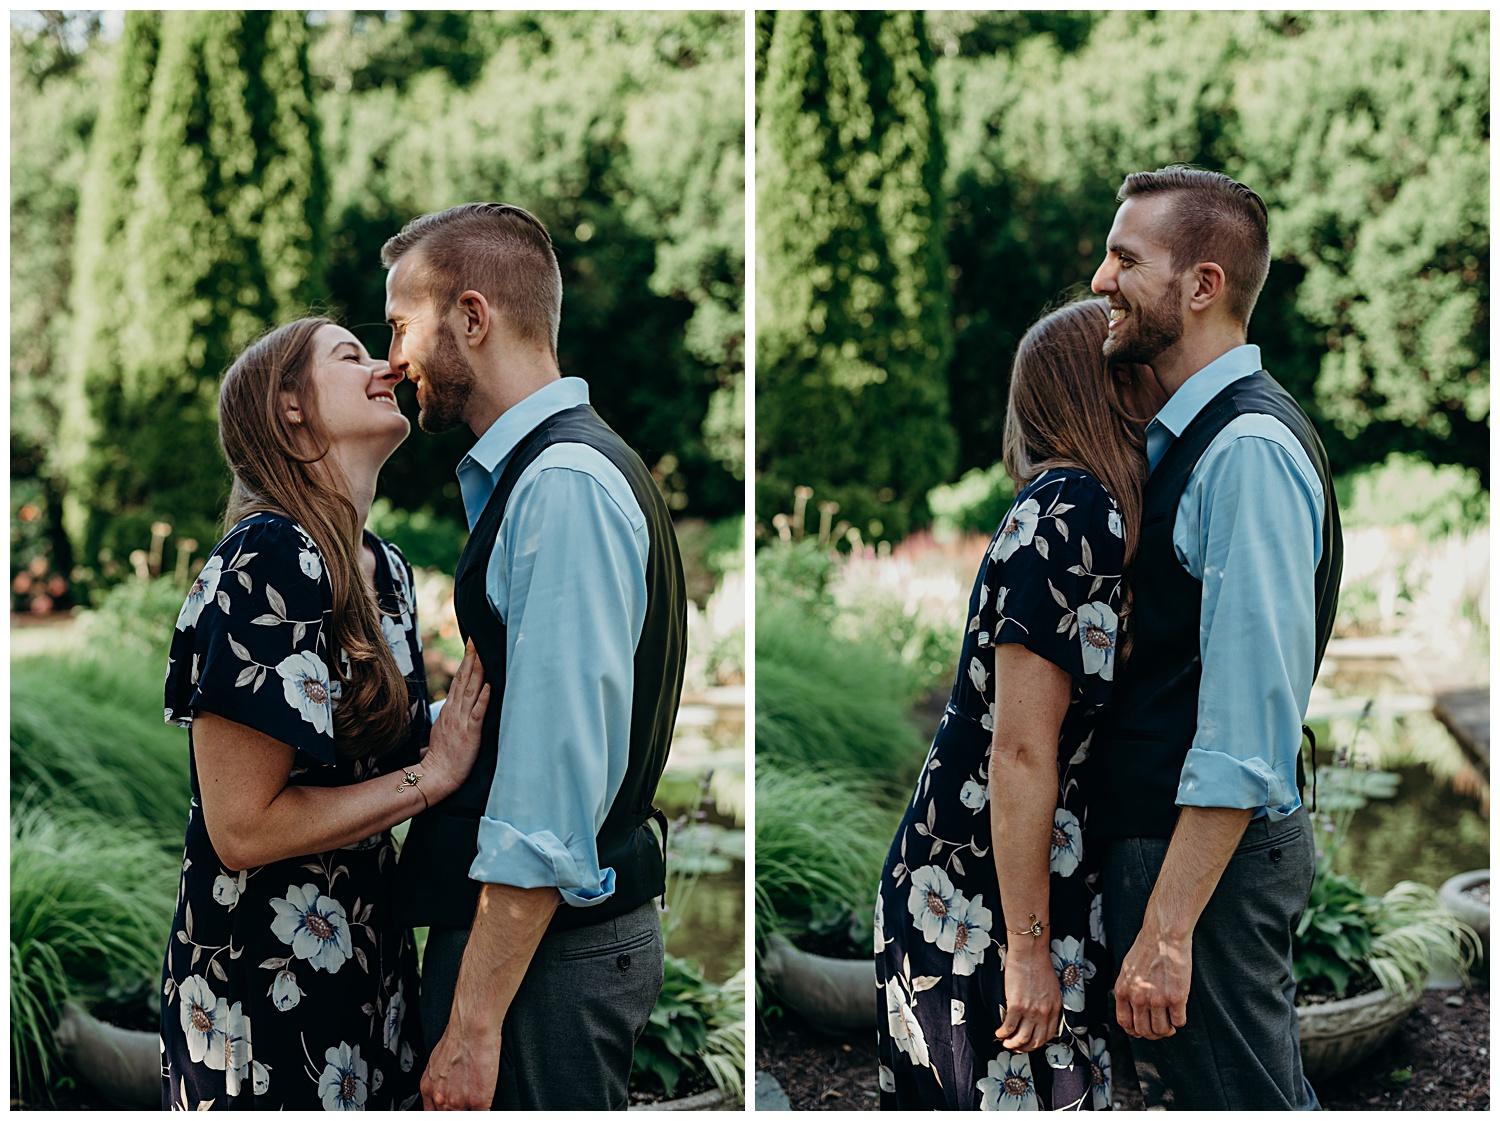 Megan-Graham-Photography-best-dc-wedding-engagement-photographer-surreybrooke-laura-eric-frederick5.jpg